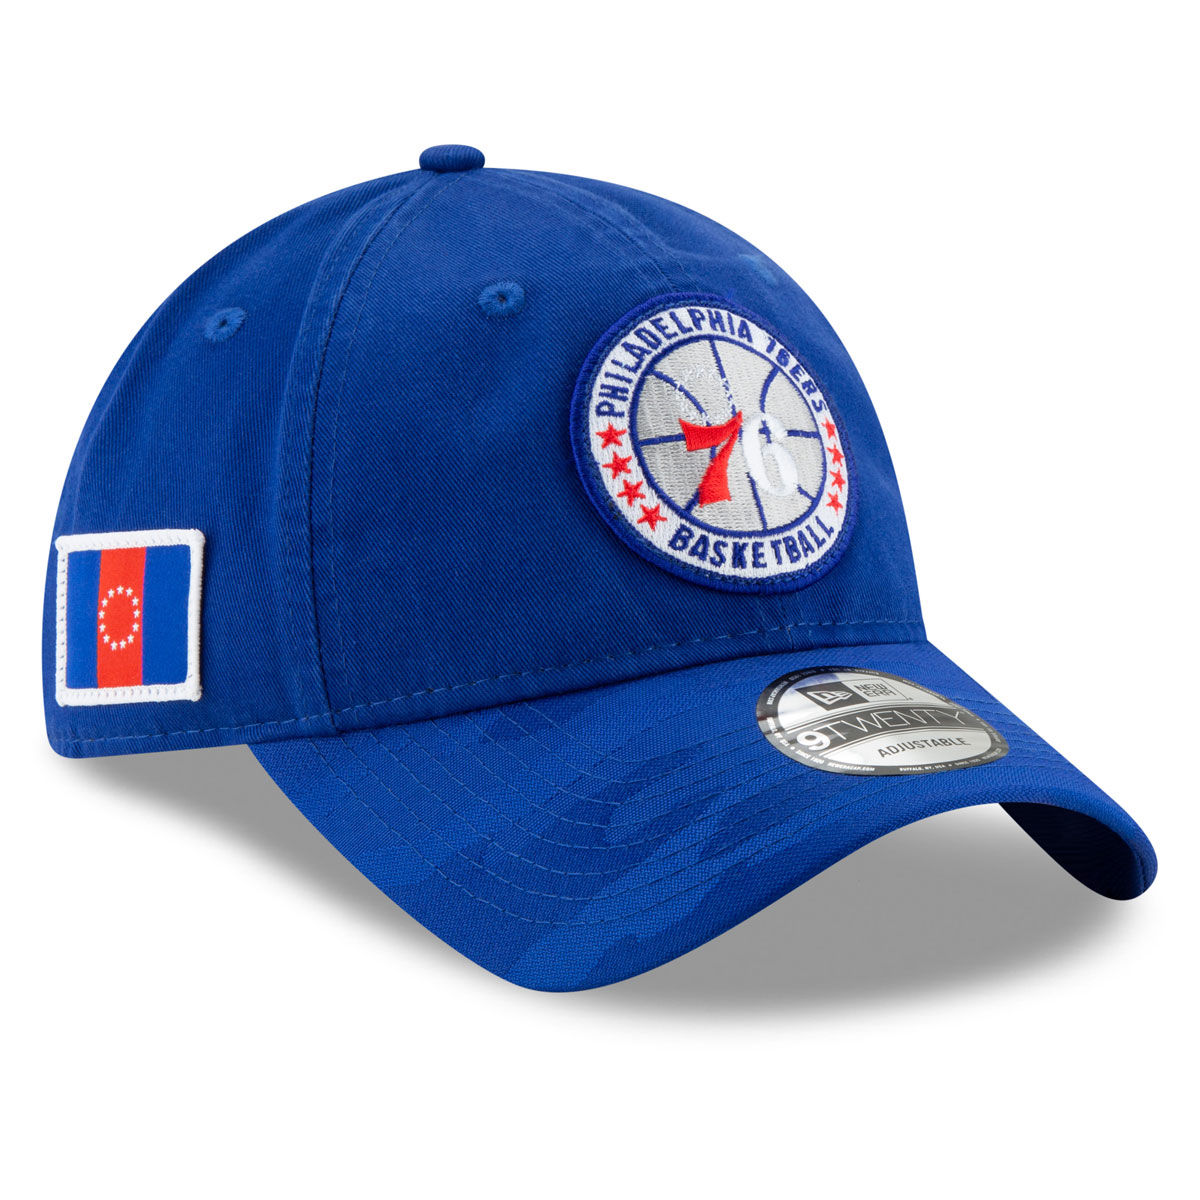 Philadelphia 76ers Adult 9TWENTY Tip Off Adjustable Hat